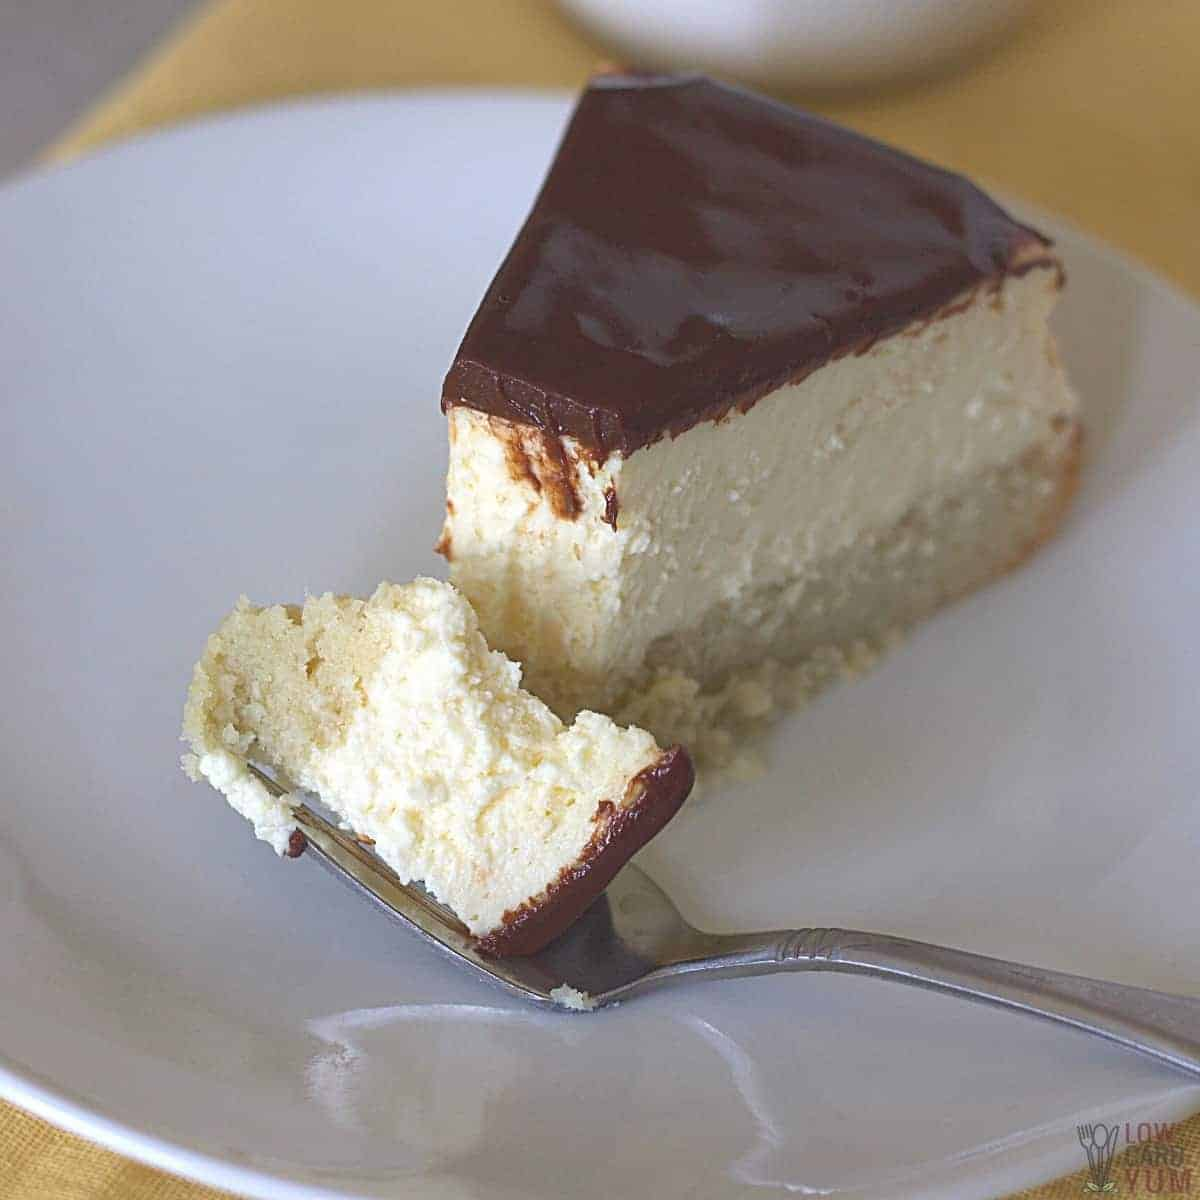 cheesecake slice with fork bite on plate